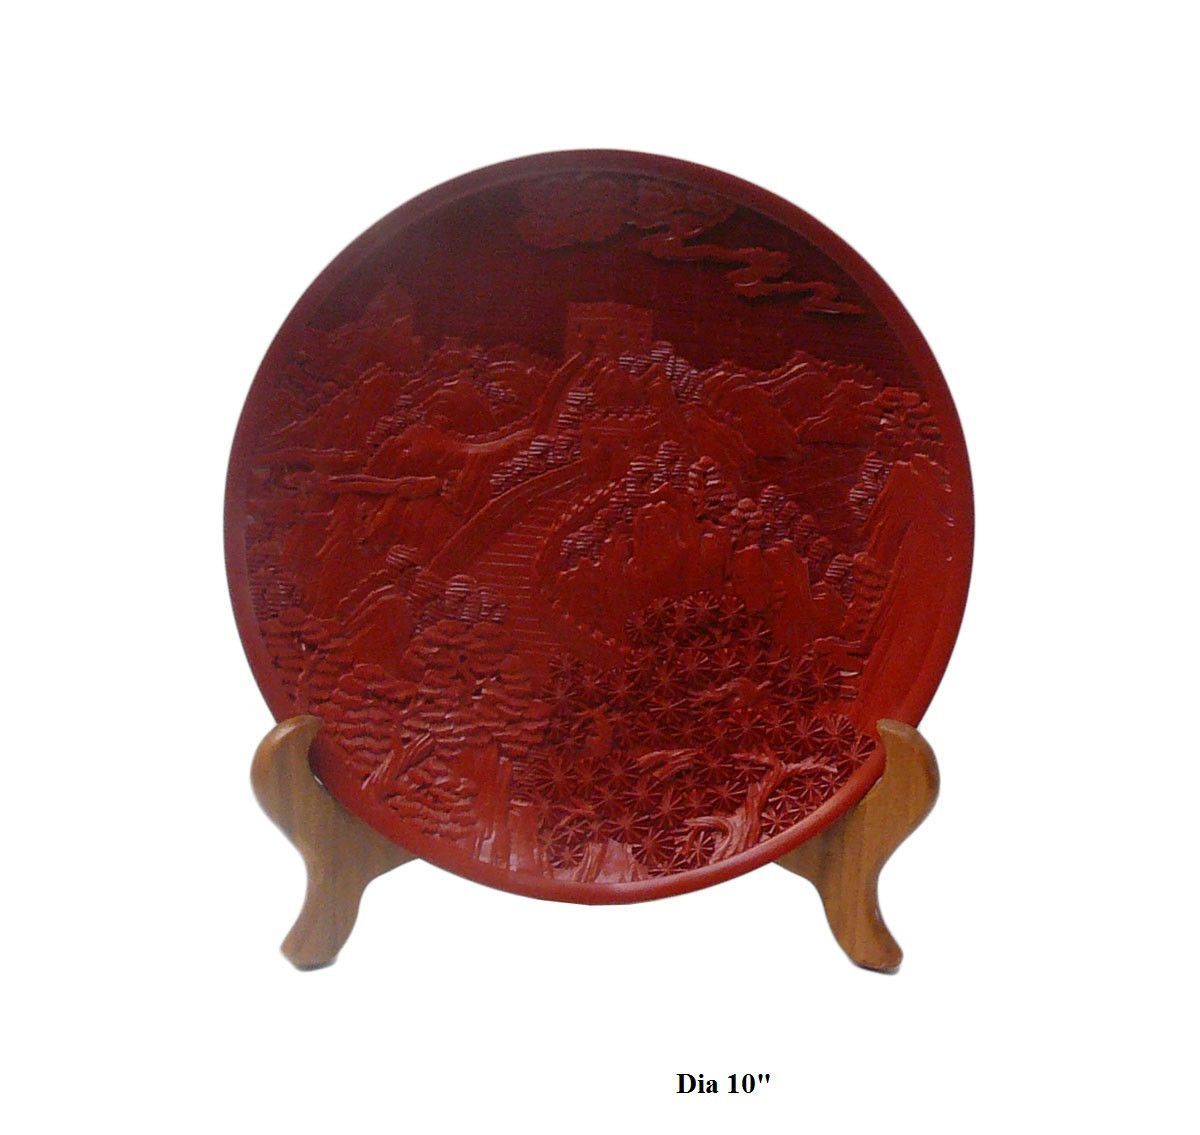 Chinese Red Lacquer Great Wall Scenery Motif Decor Plate